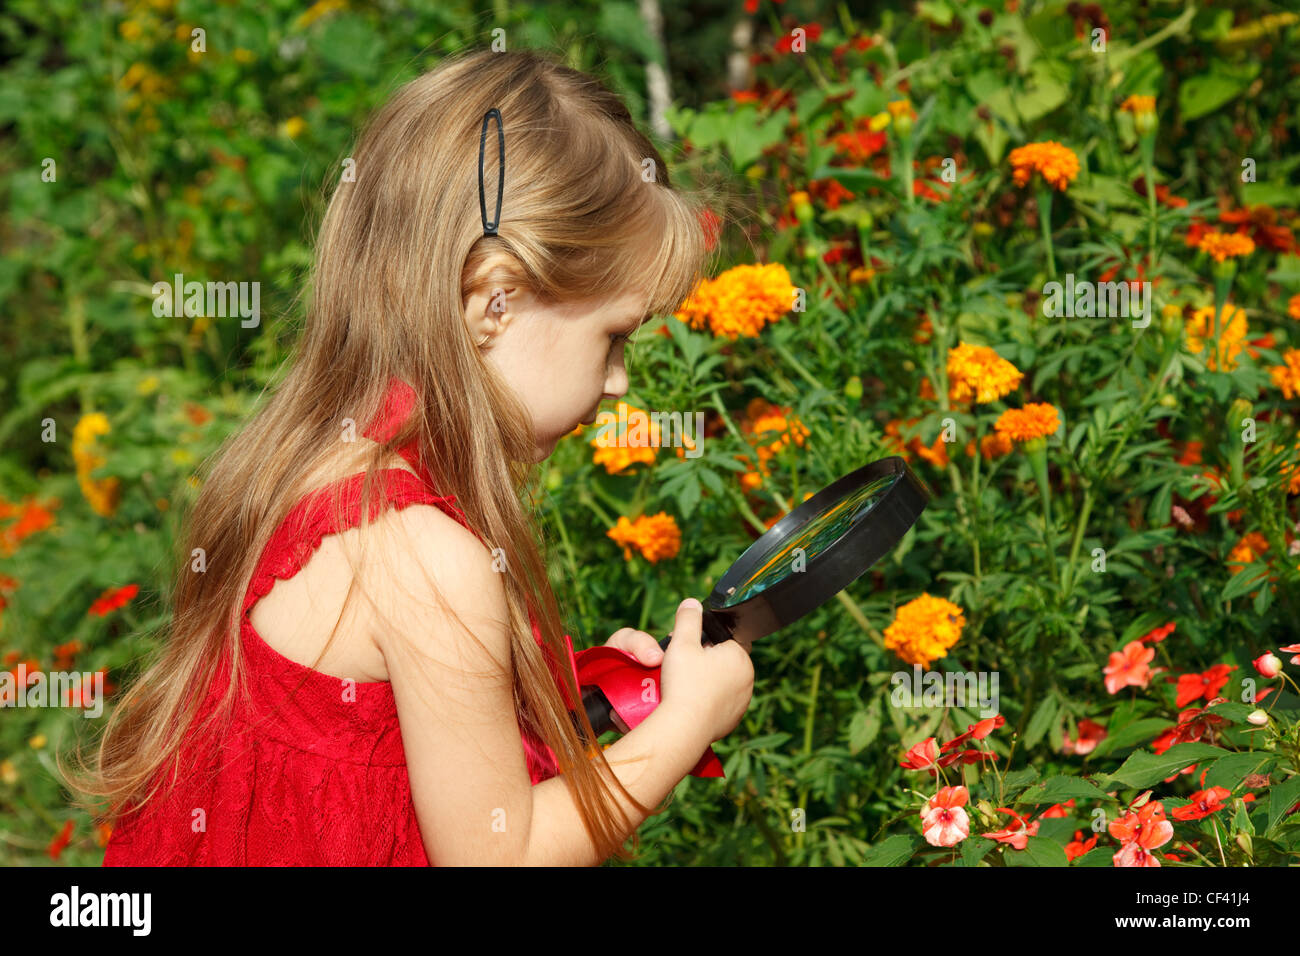 Little girl in red dress considers flower through magnifying glass. - Stock Image